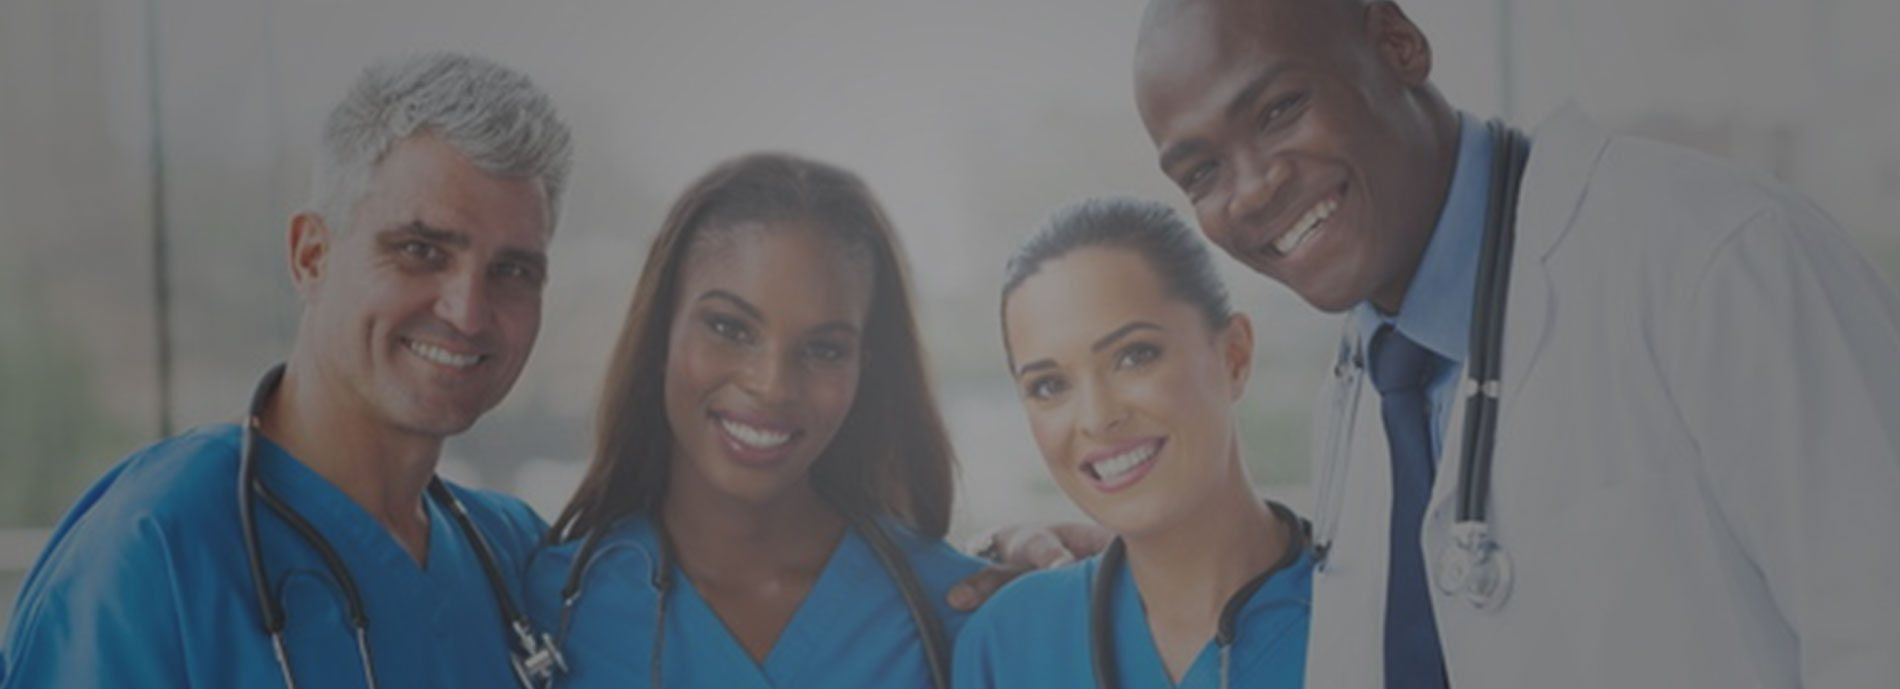 Alto Healthcare Staffing